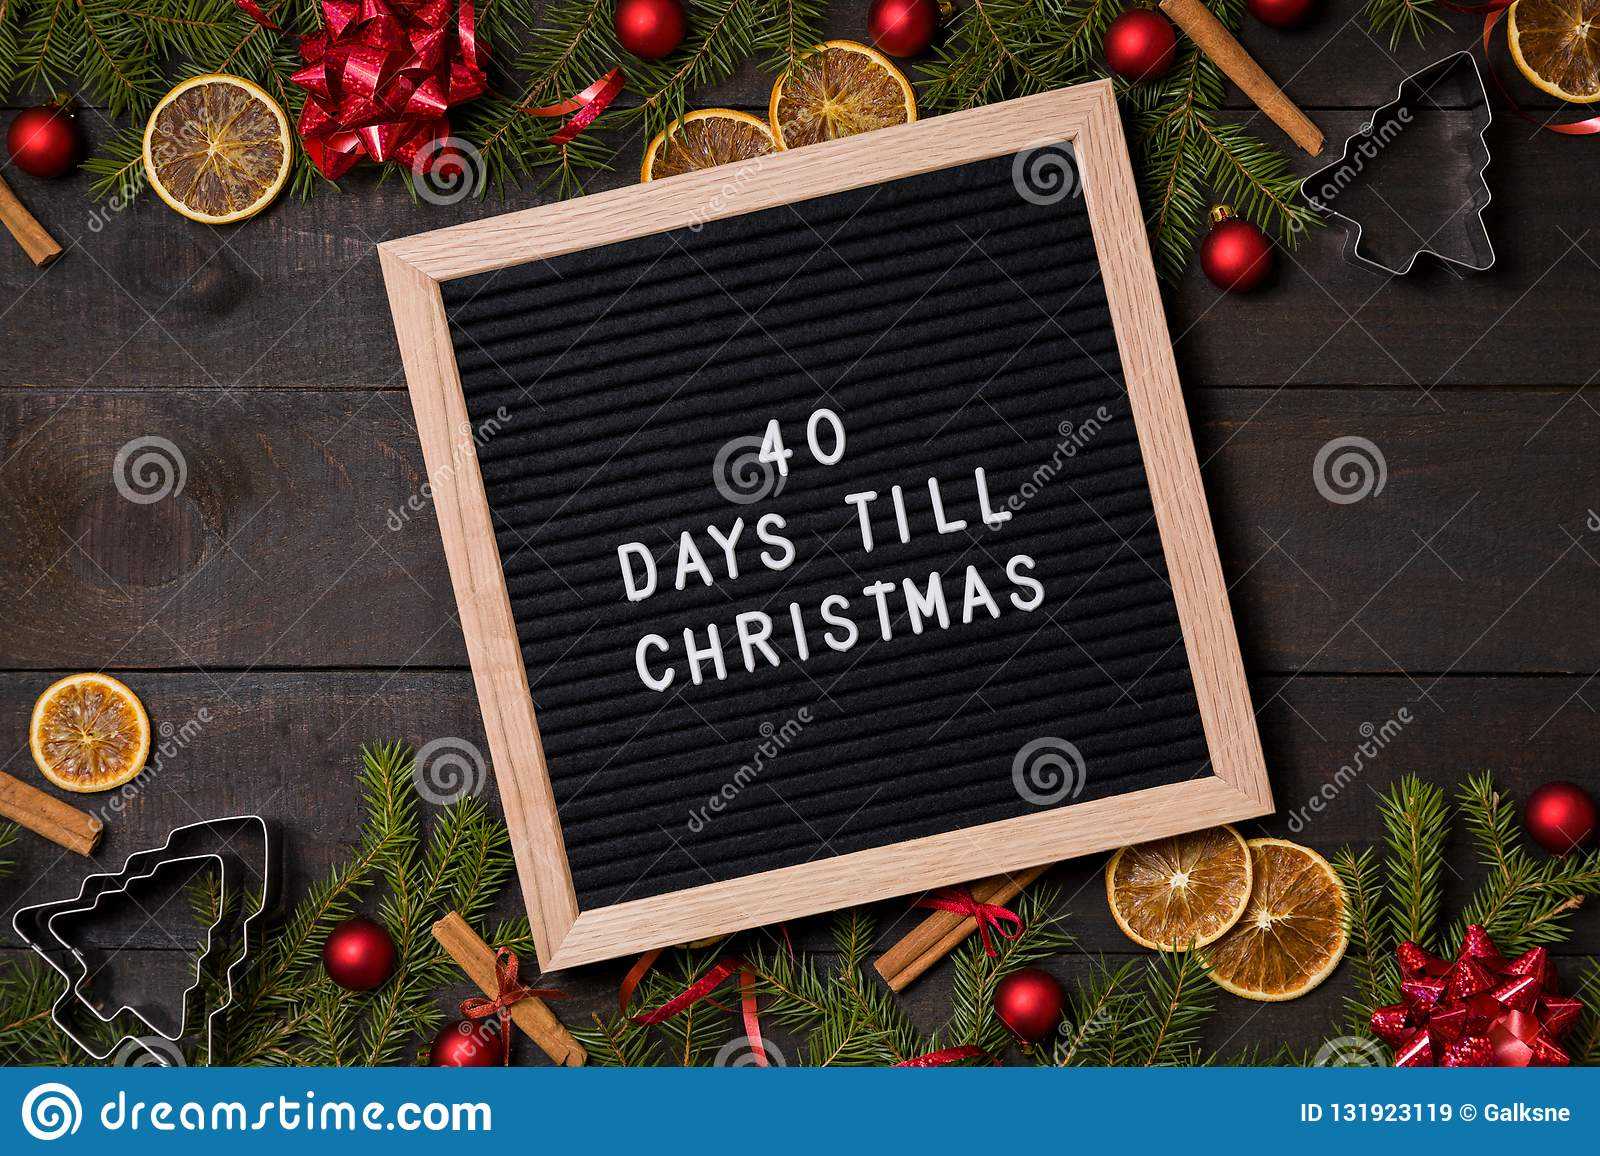 Days Till Christmas Chalkboard.Days Till Christmas Countdown Letter Board On Dark Rustic